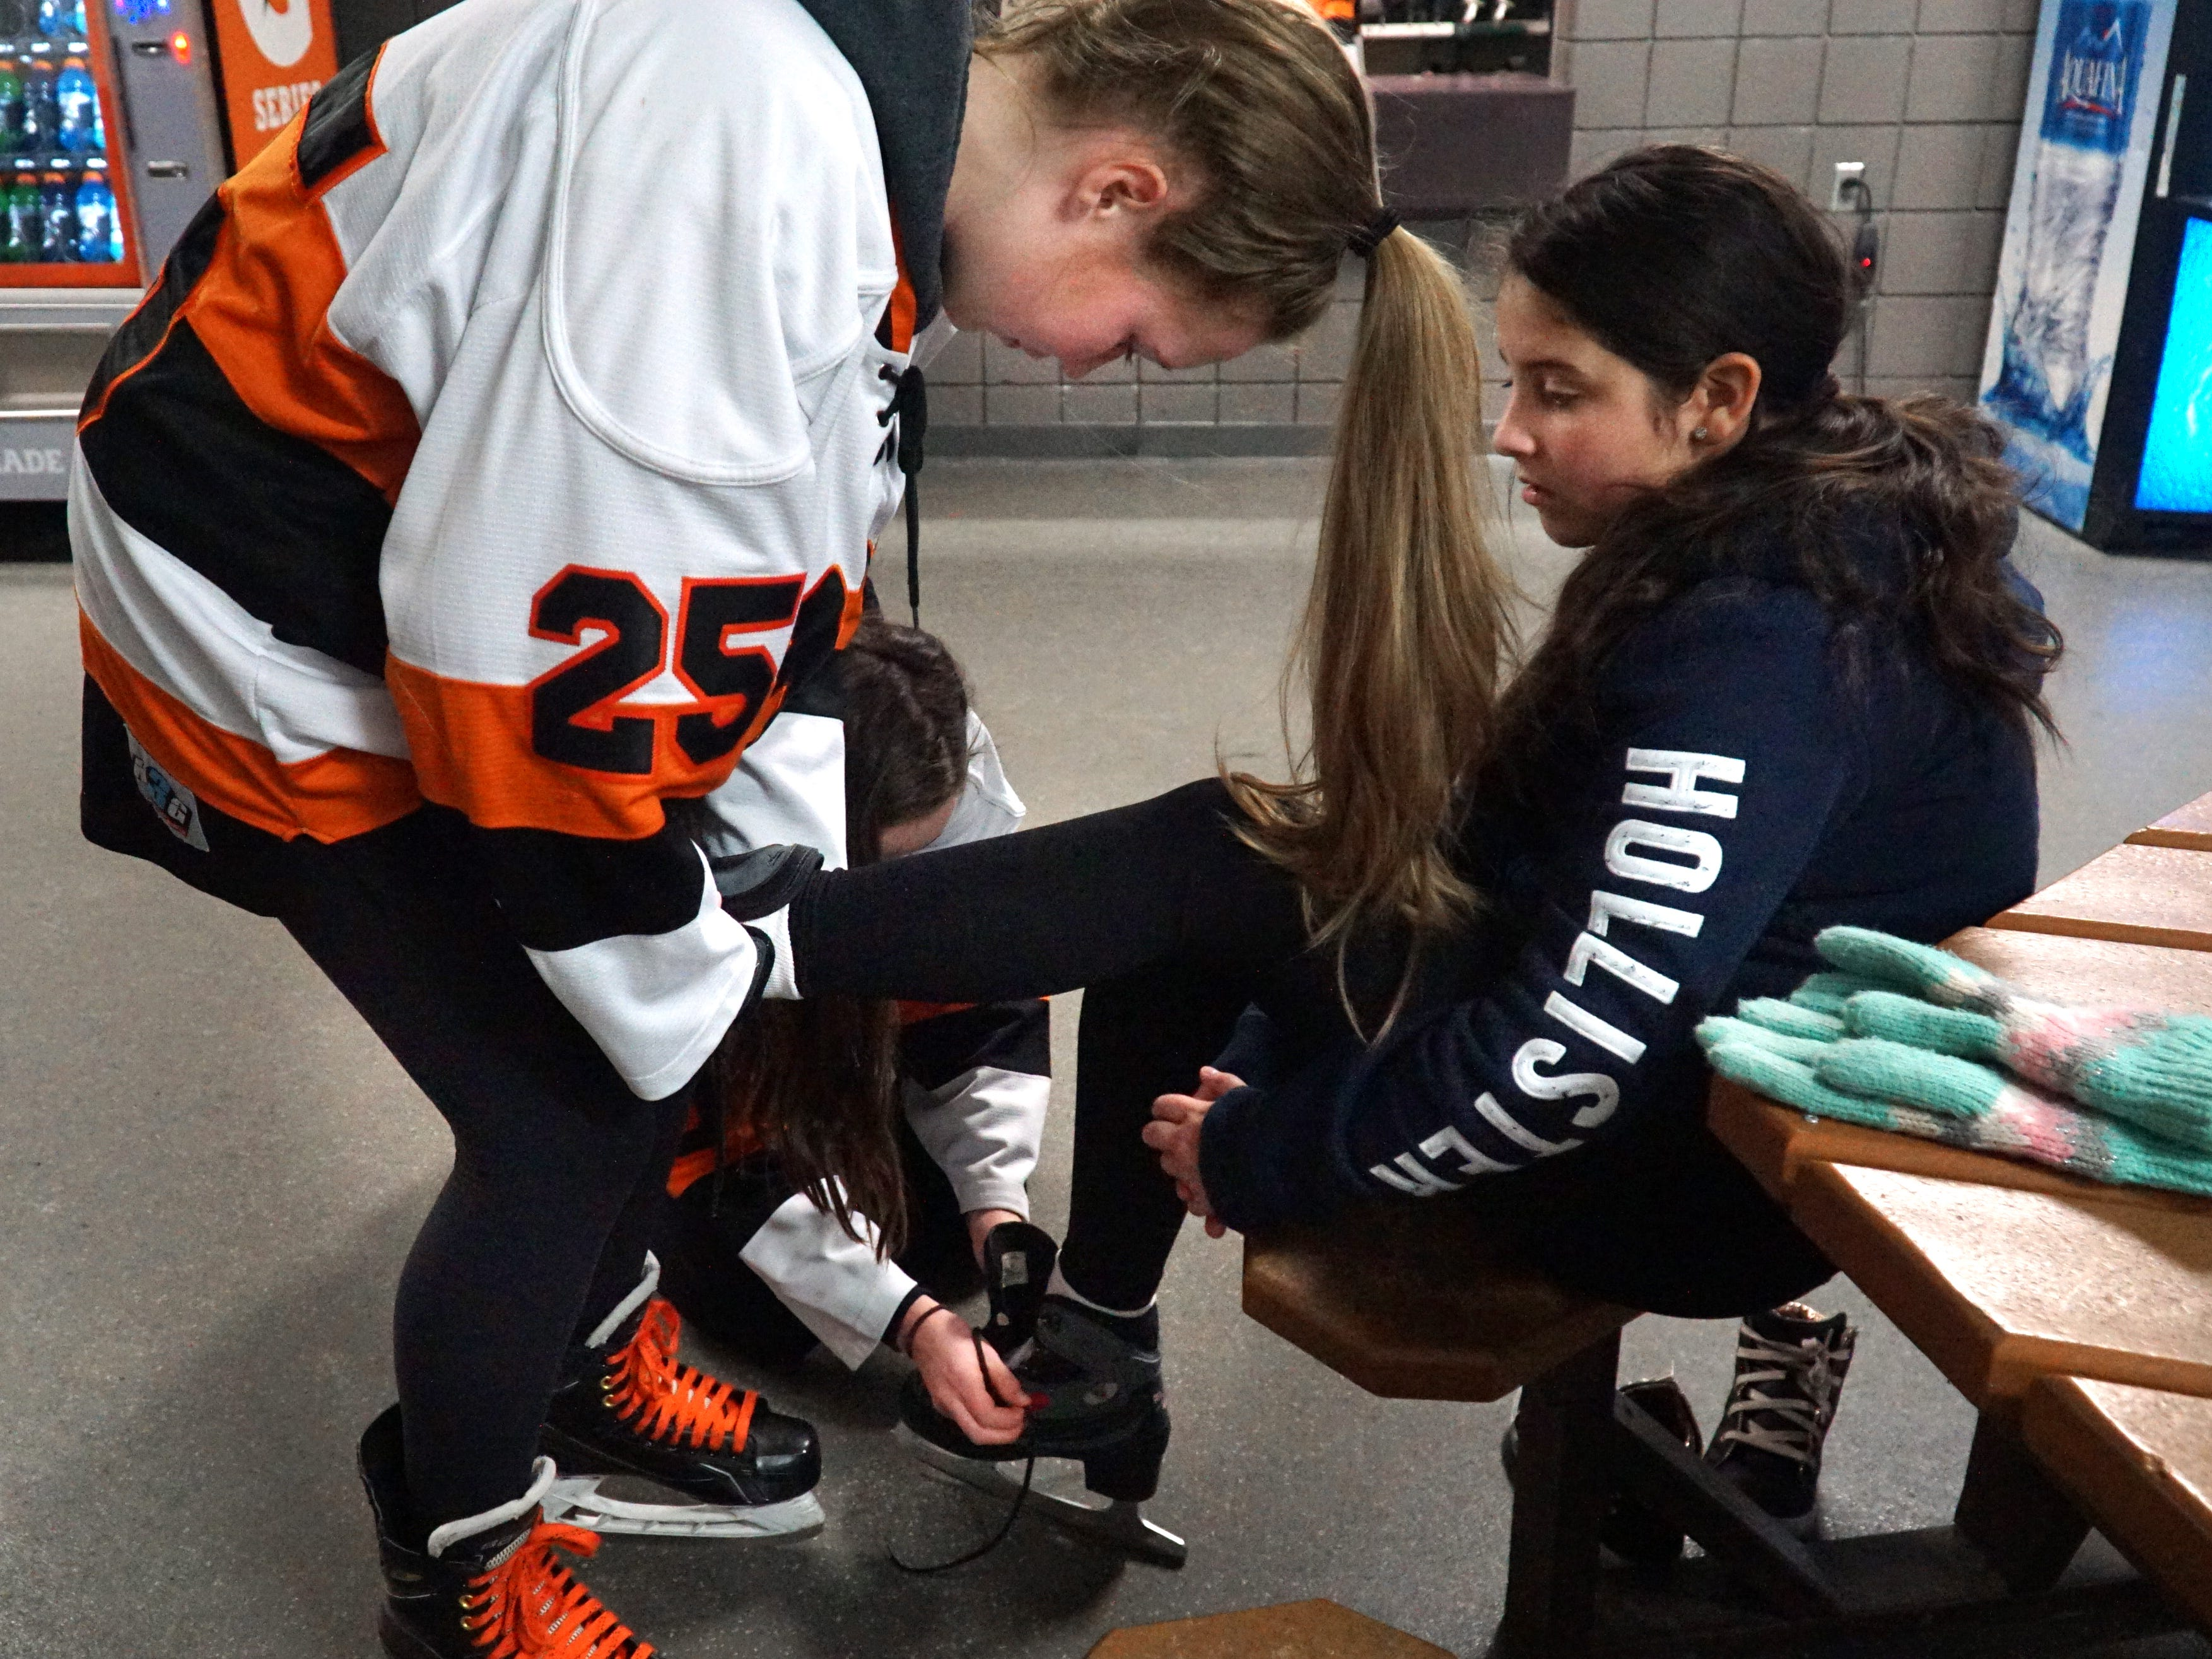 Northville varsity girls hockey team members Brooke Hanson, left, and Grace Lapinski (partially hidden) help to lace up the skates of Neinas Elementary student Maria Salcido, 10, as the Northville schools hockey teams welcomed visitors from Detroit on Feb. 13.